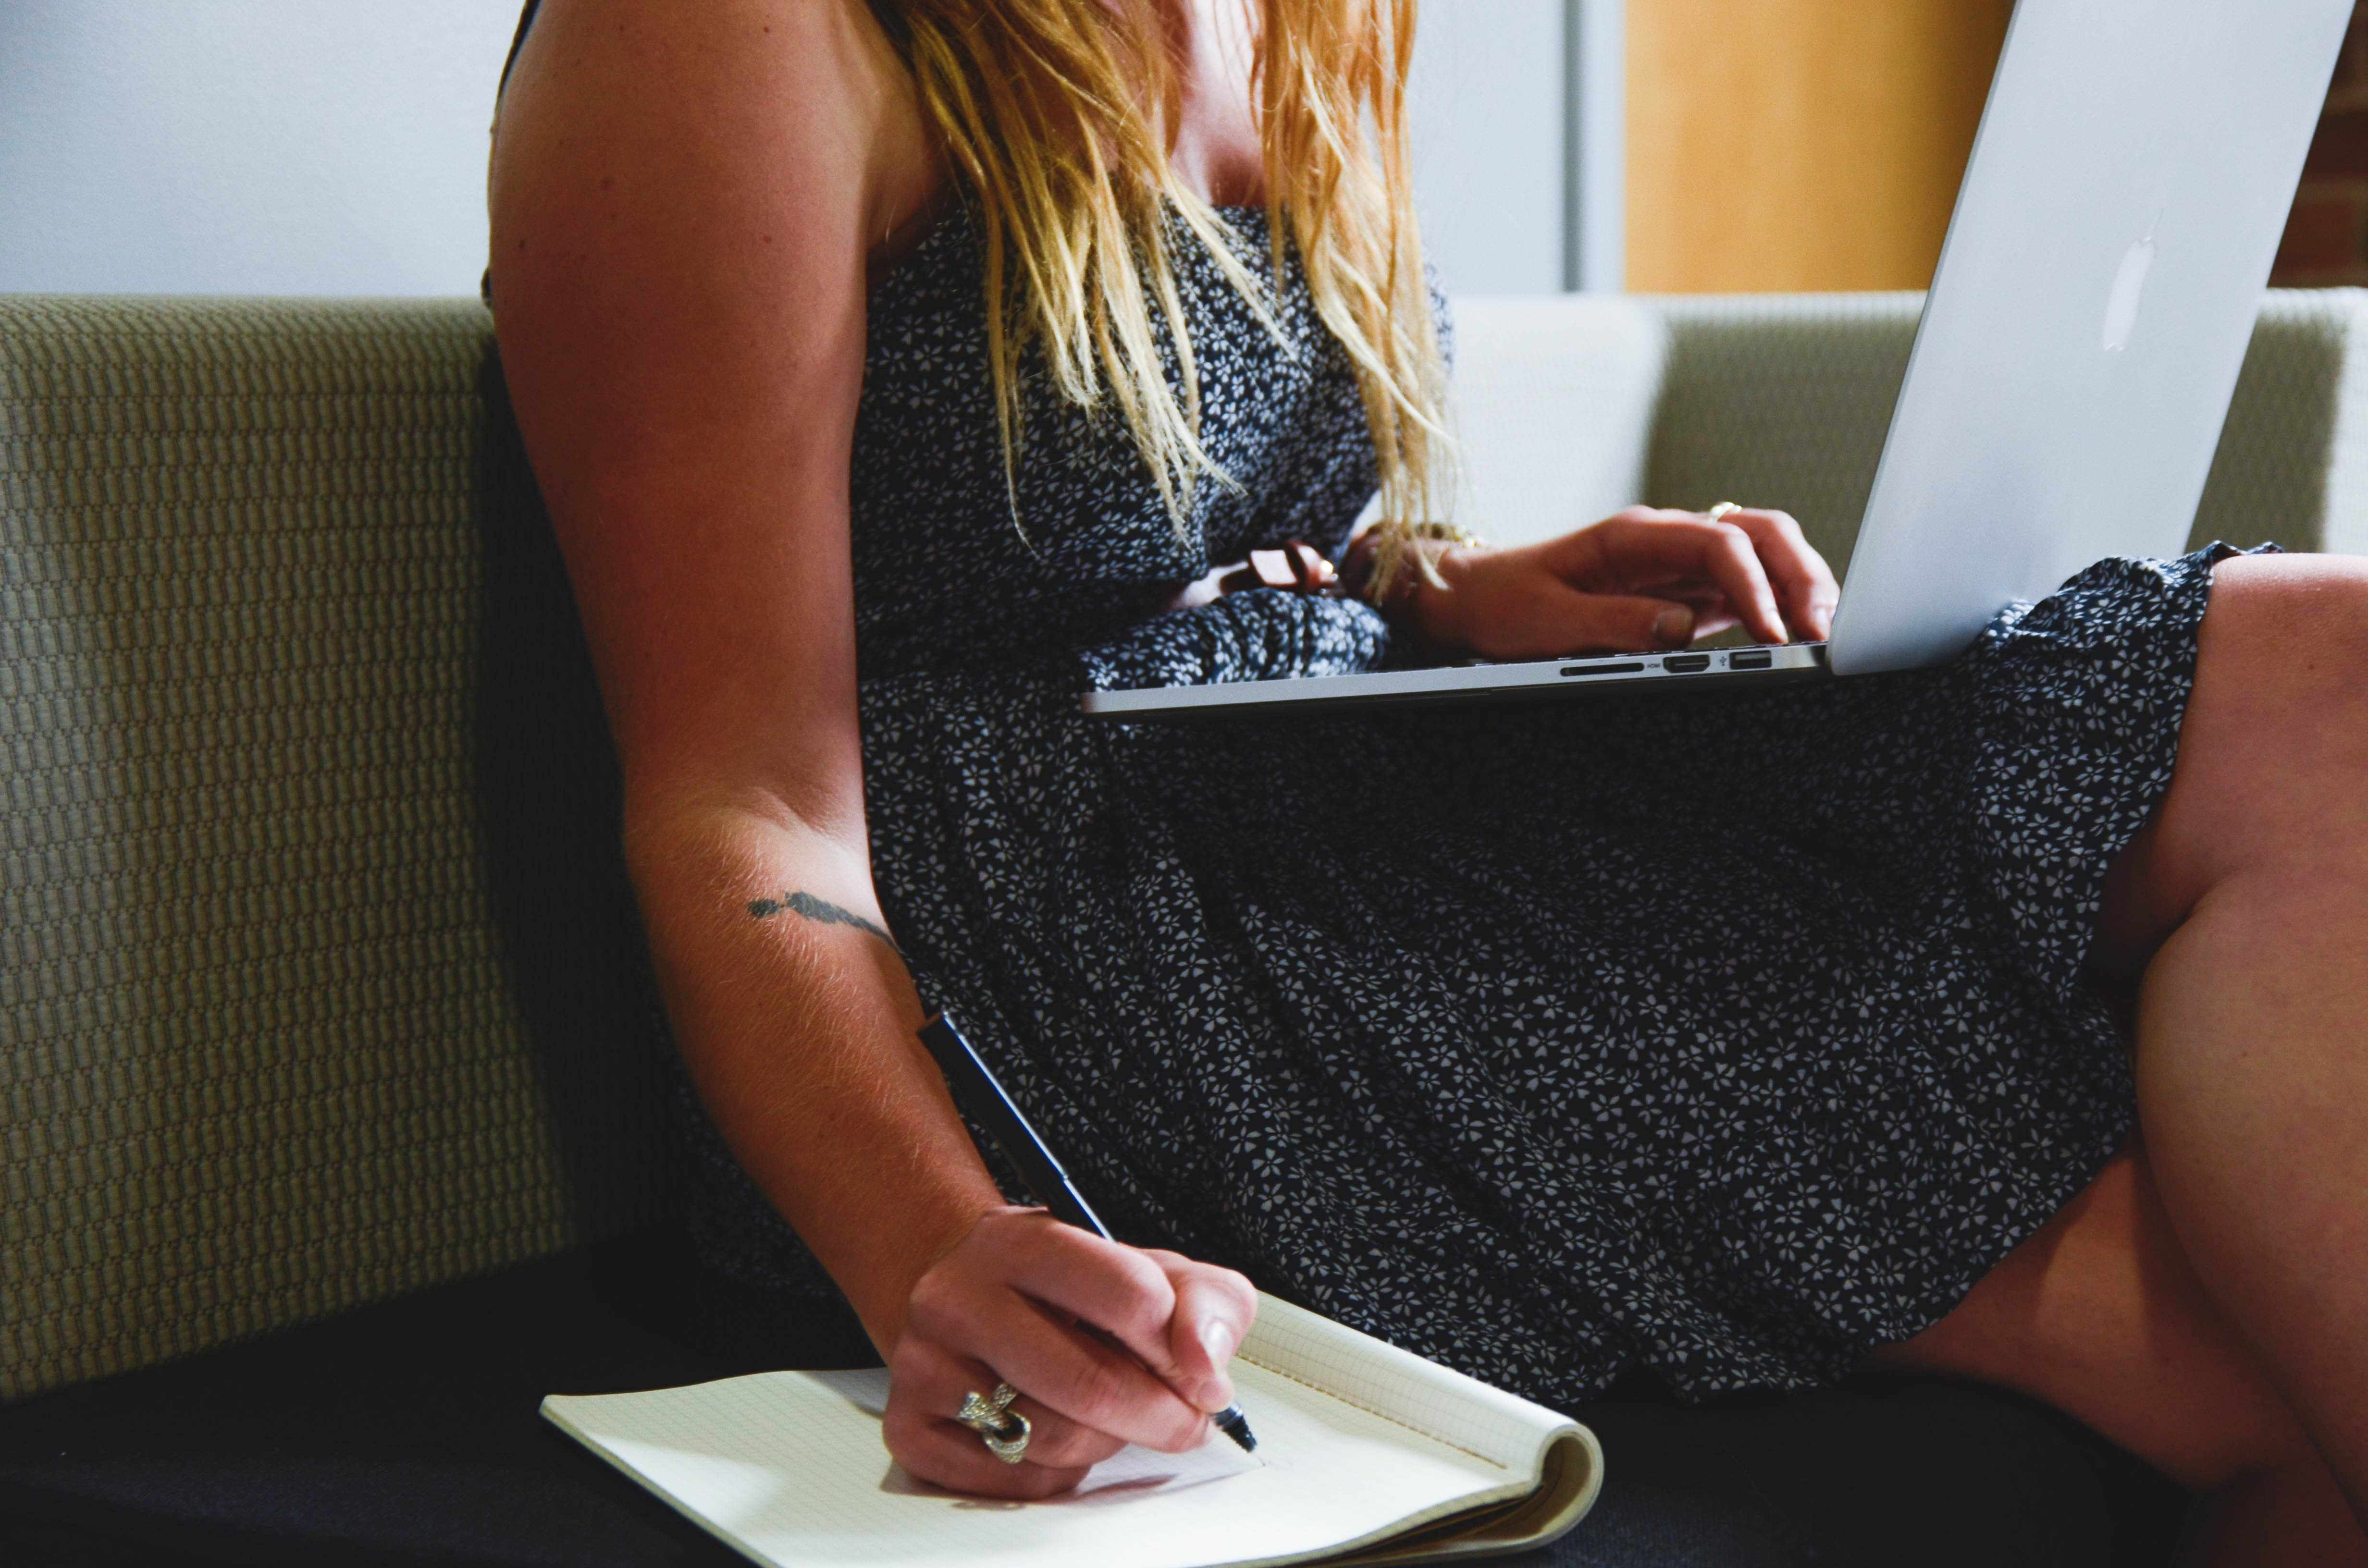 A woman seated on a couch using a laptop writes on a notepad with her free hand.